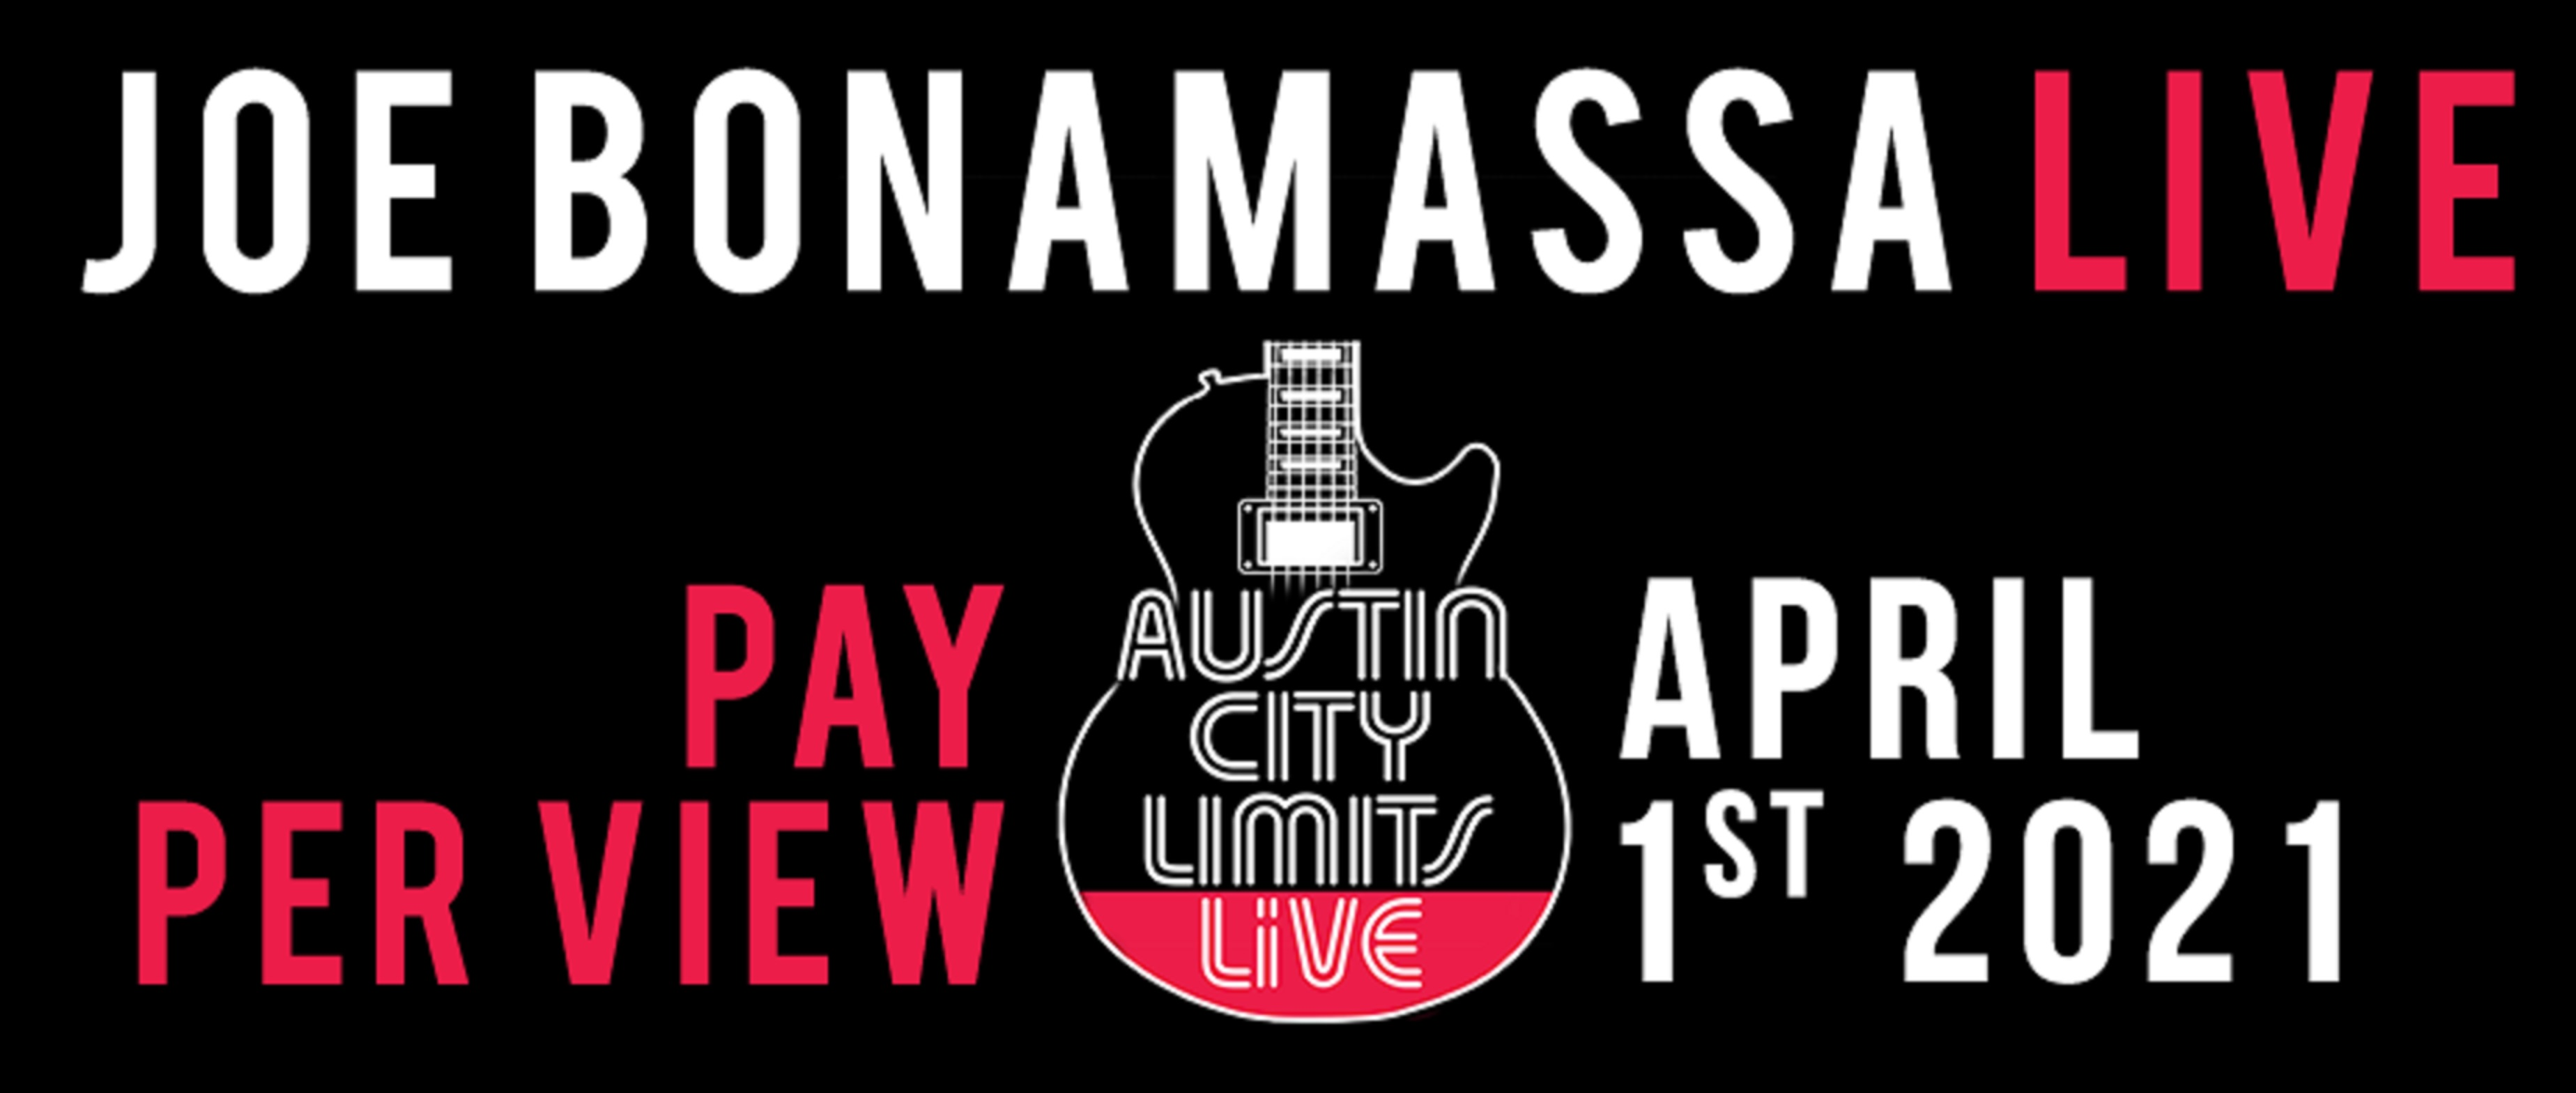 Joe Bonamassa livestream from ACL Live; Event to raise money for Fueling Musicians